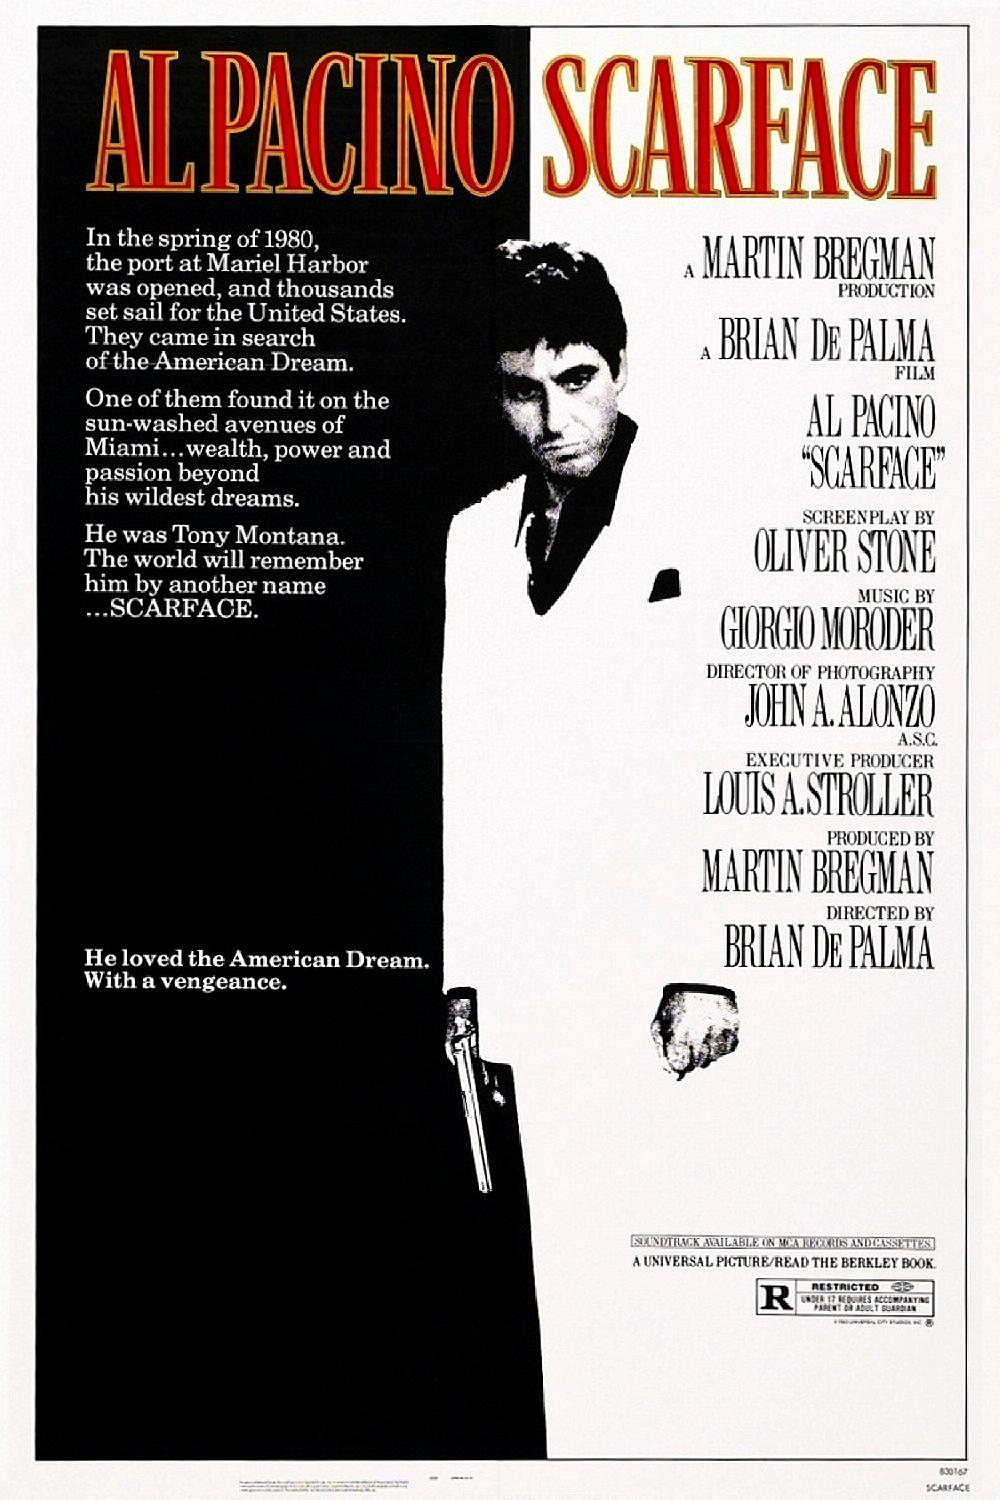 """Poster for """"Scarface."""" Al Pacino stands in the center, and the image is black and white with bright red text."""